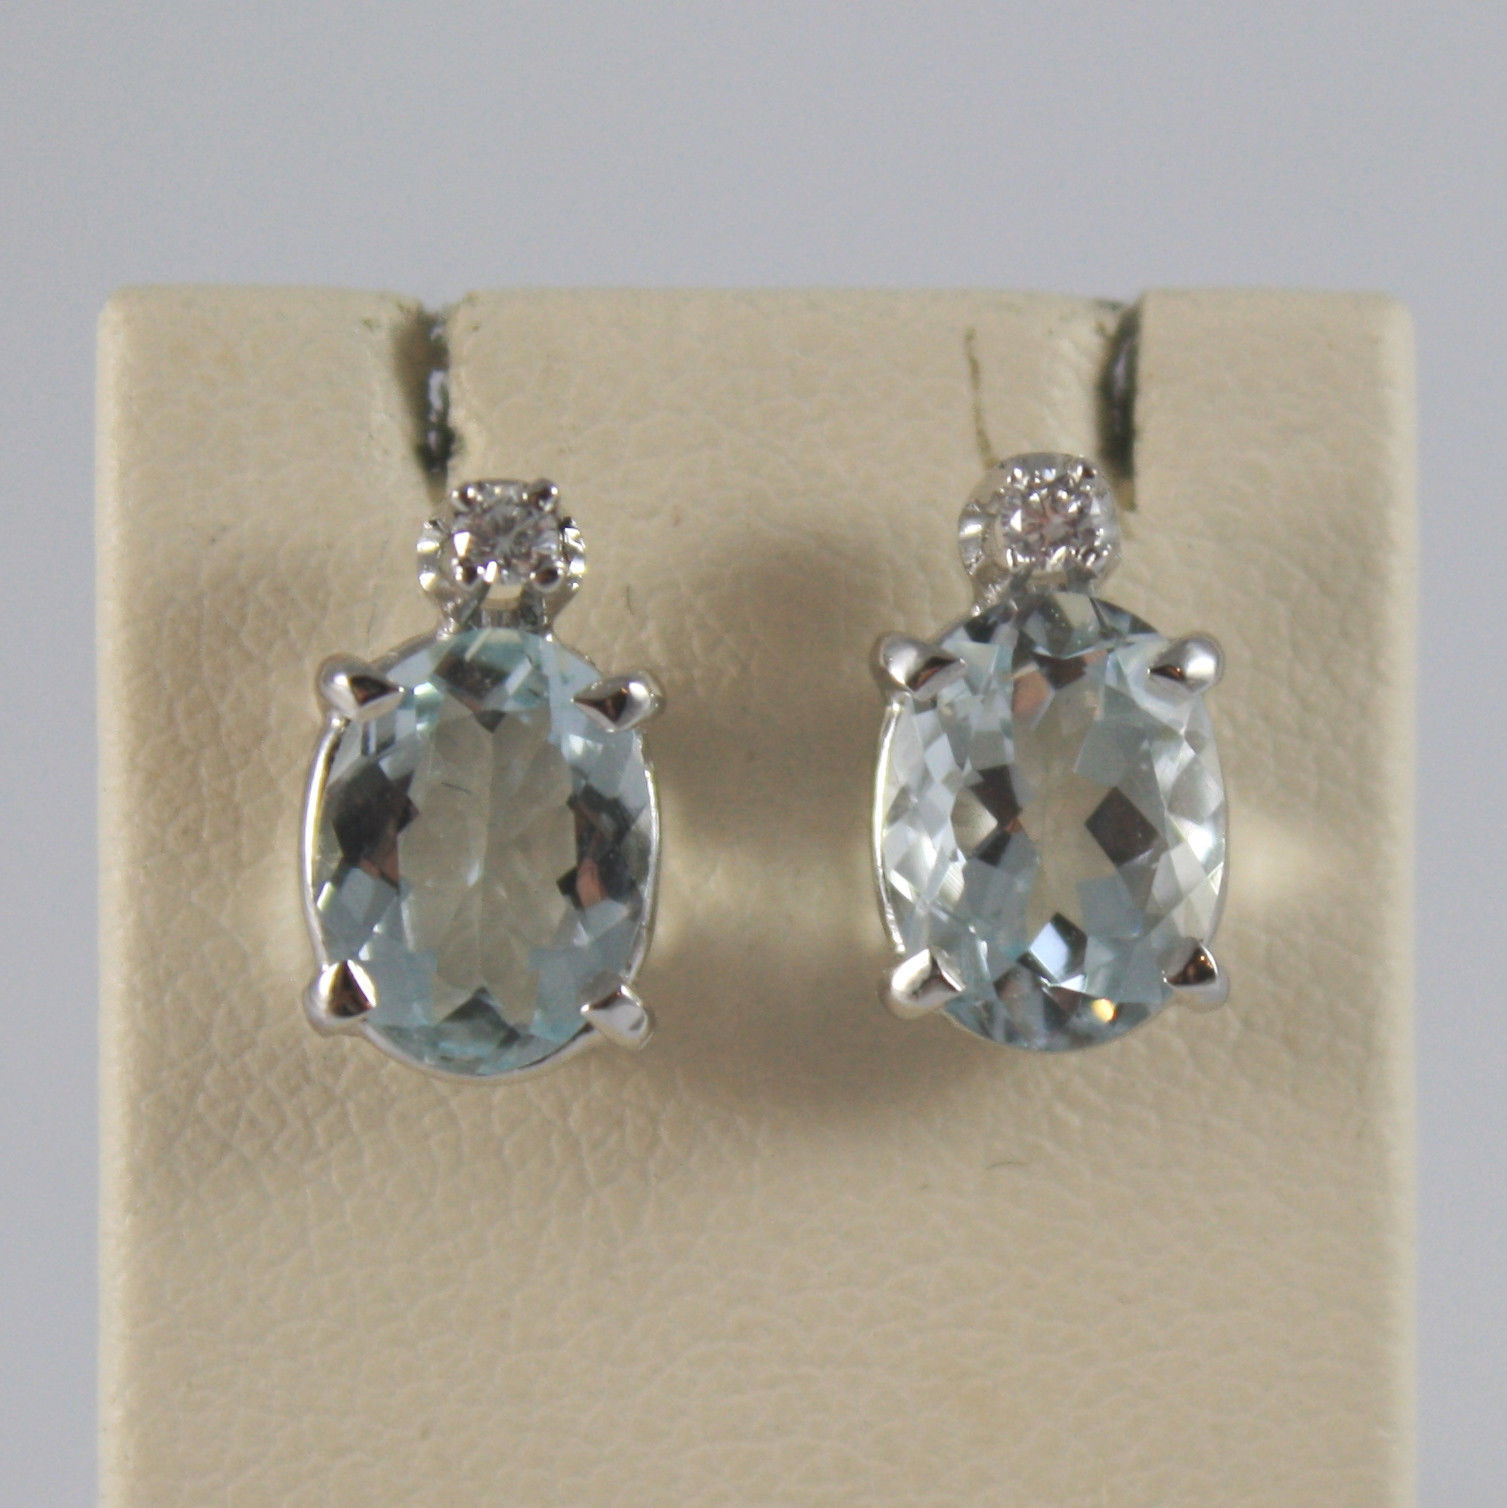 SOLID 18K WHITE GOLD EARRINGS, WITH AQUAMARINE CT. 2,60 AND DIAMONDS CT. 0,04